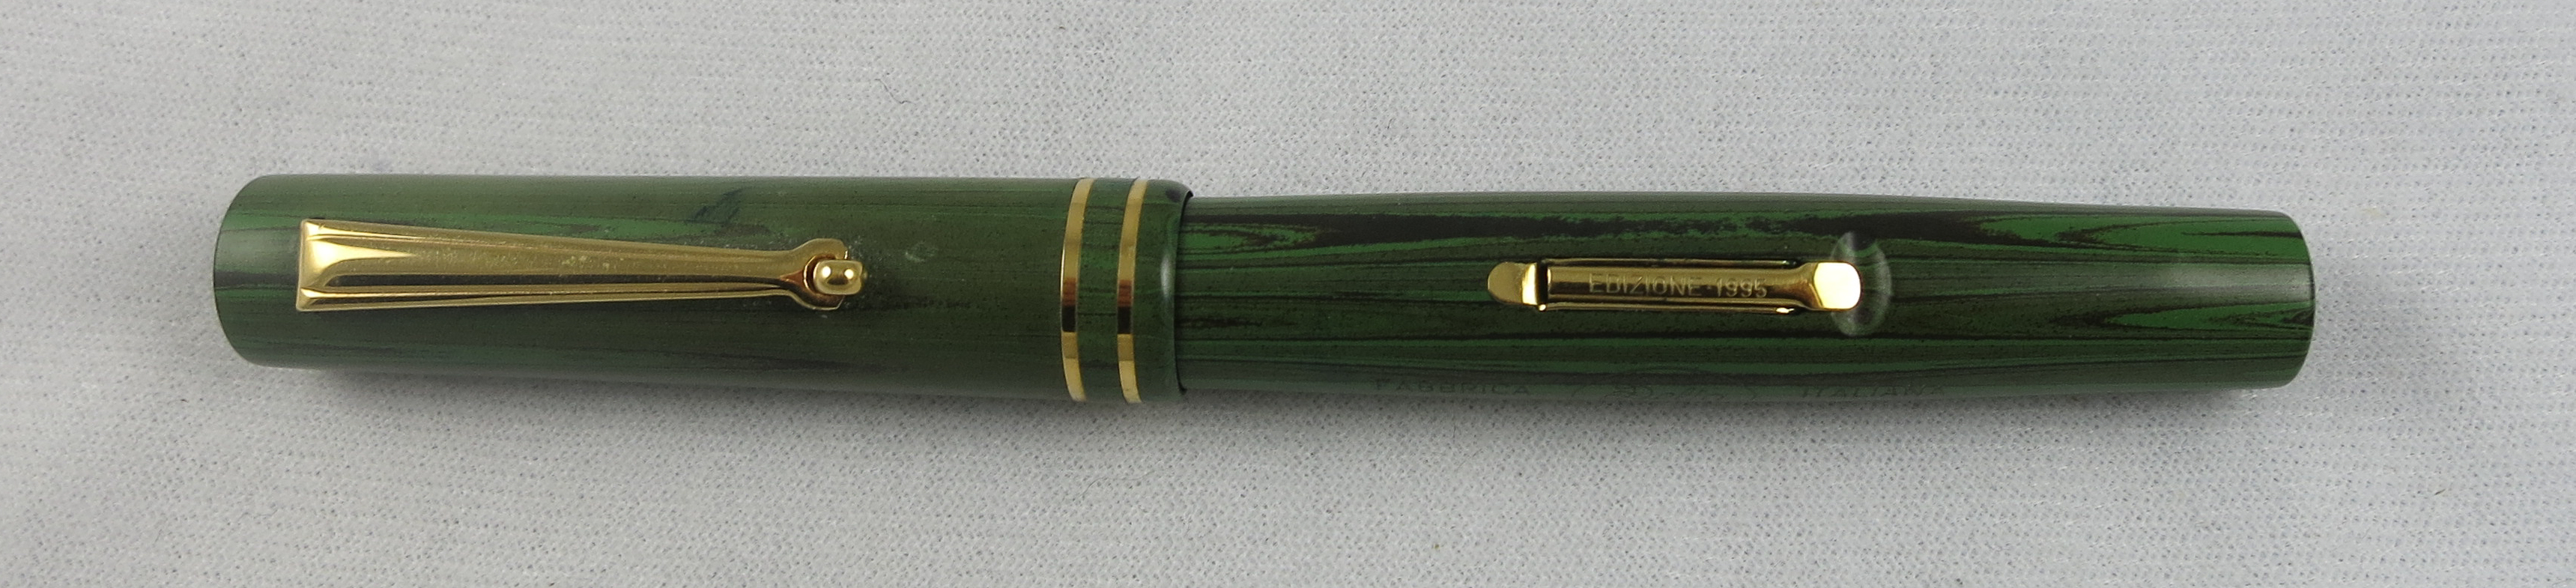 Delta Astra Limited Edition Green Woodgrain Ebonite Lever Filler (SB 602)